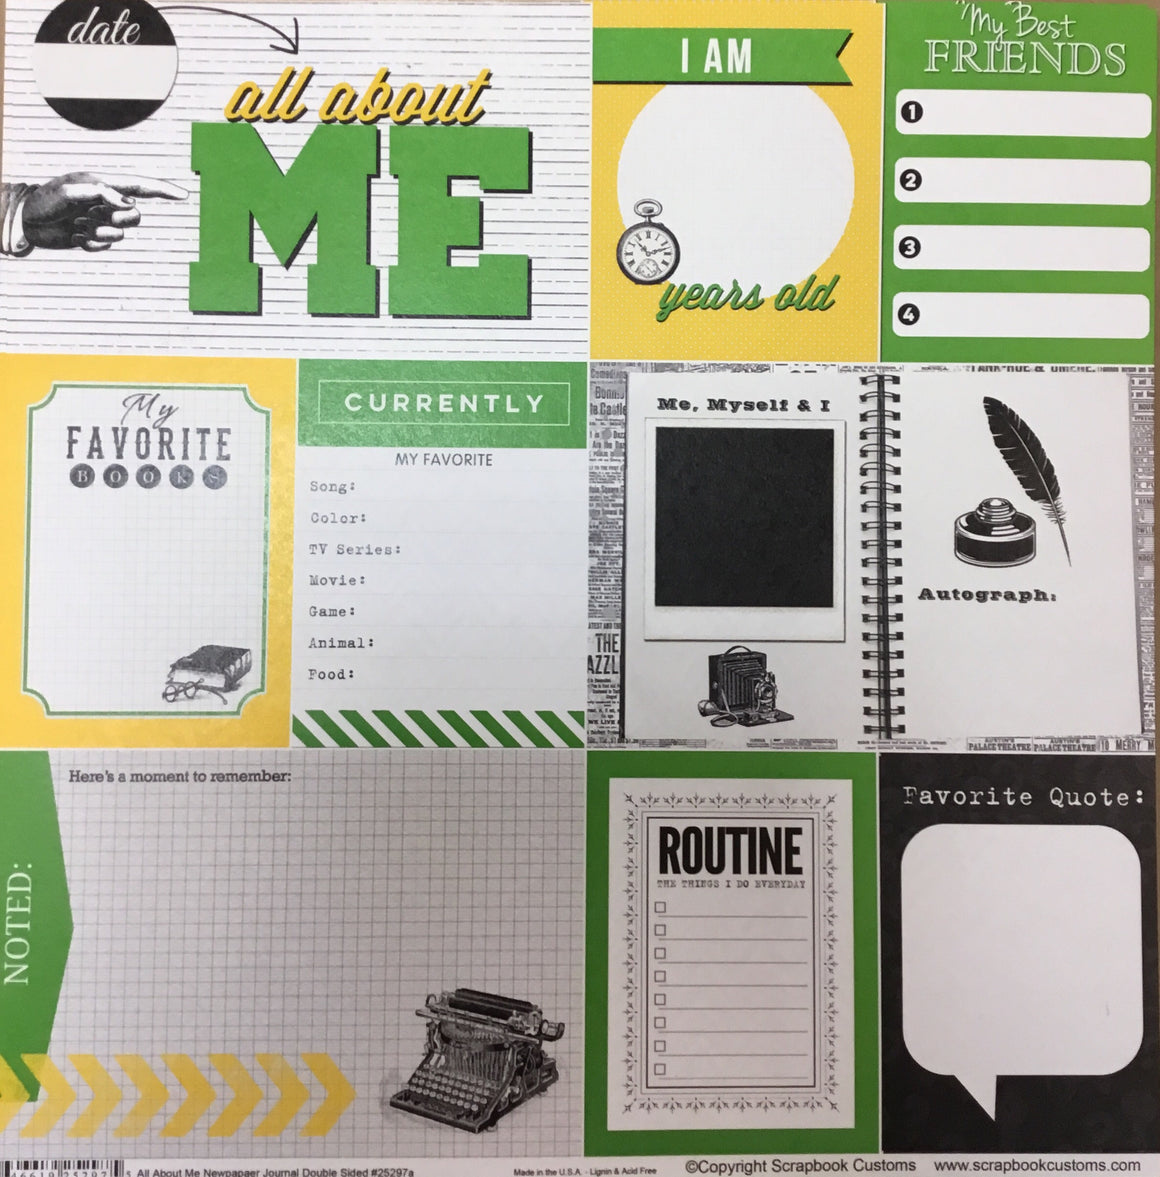 Anna McCabe School all about me newspaper journal DS paper